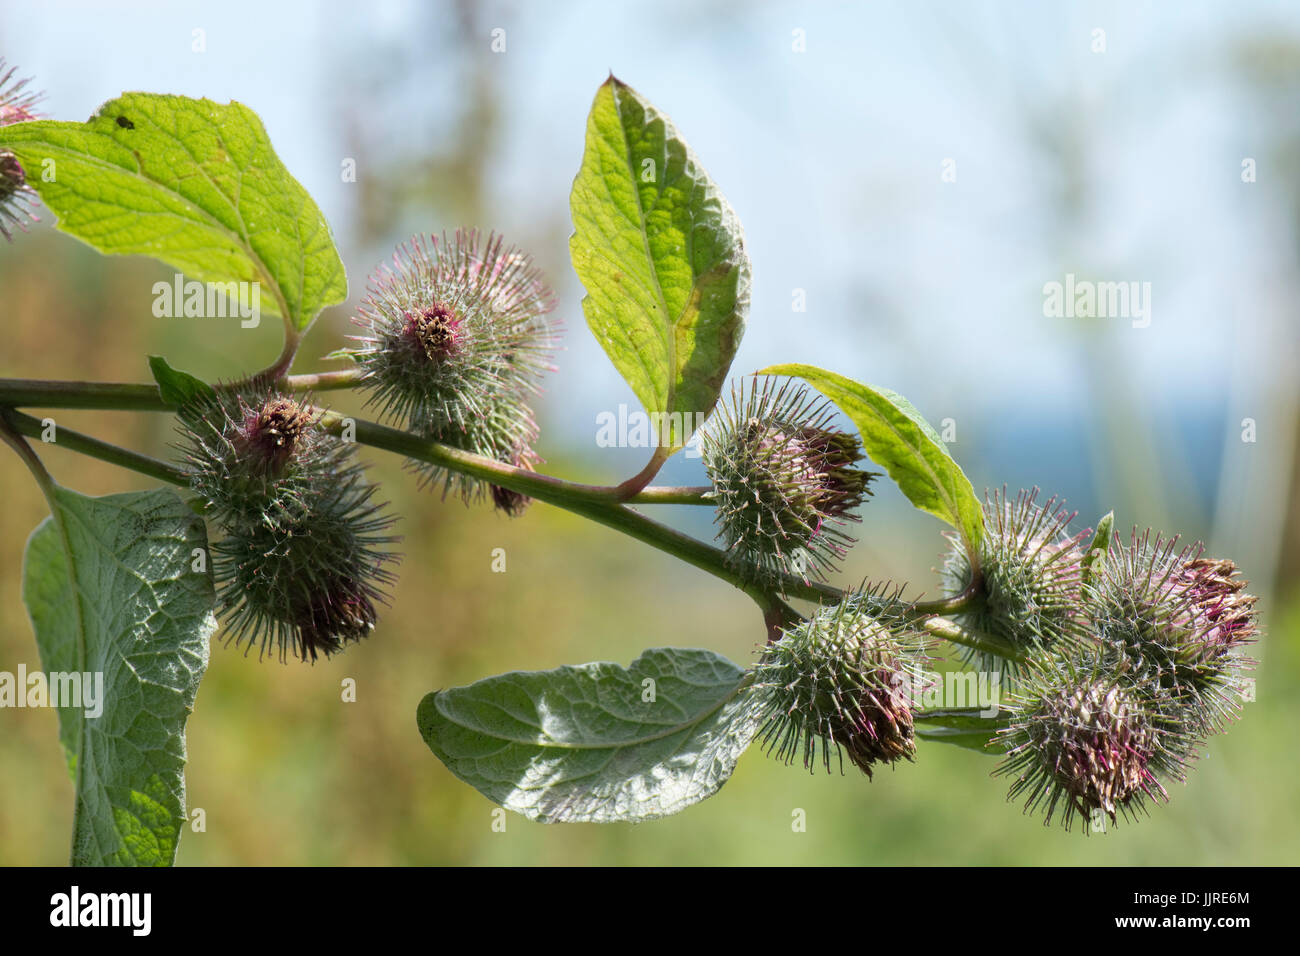 Lesser burdock, Arctium minus, flowers dying and producing seeds covered in small hooks like velcro which help in - Stock Image